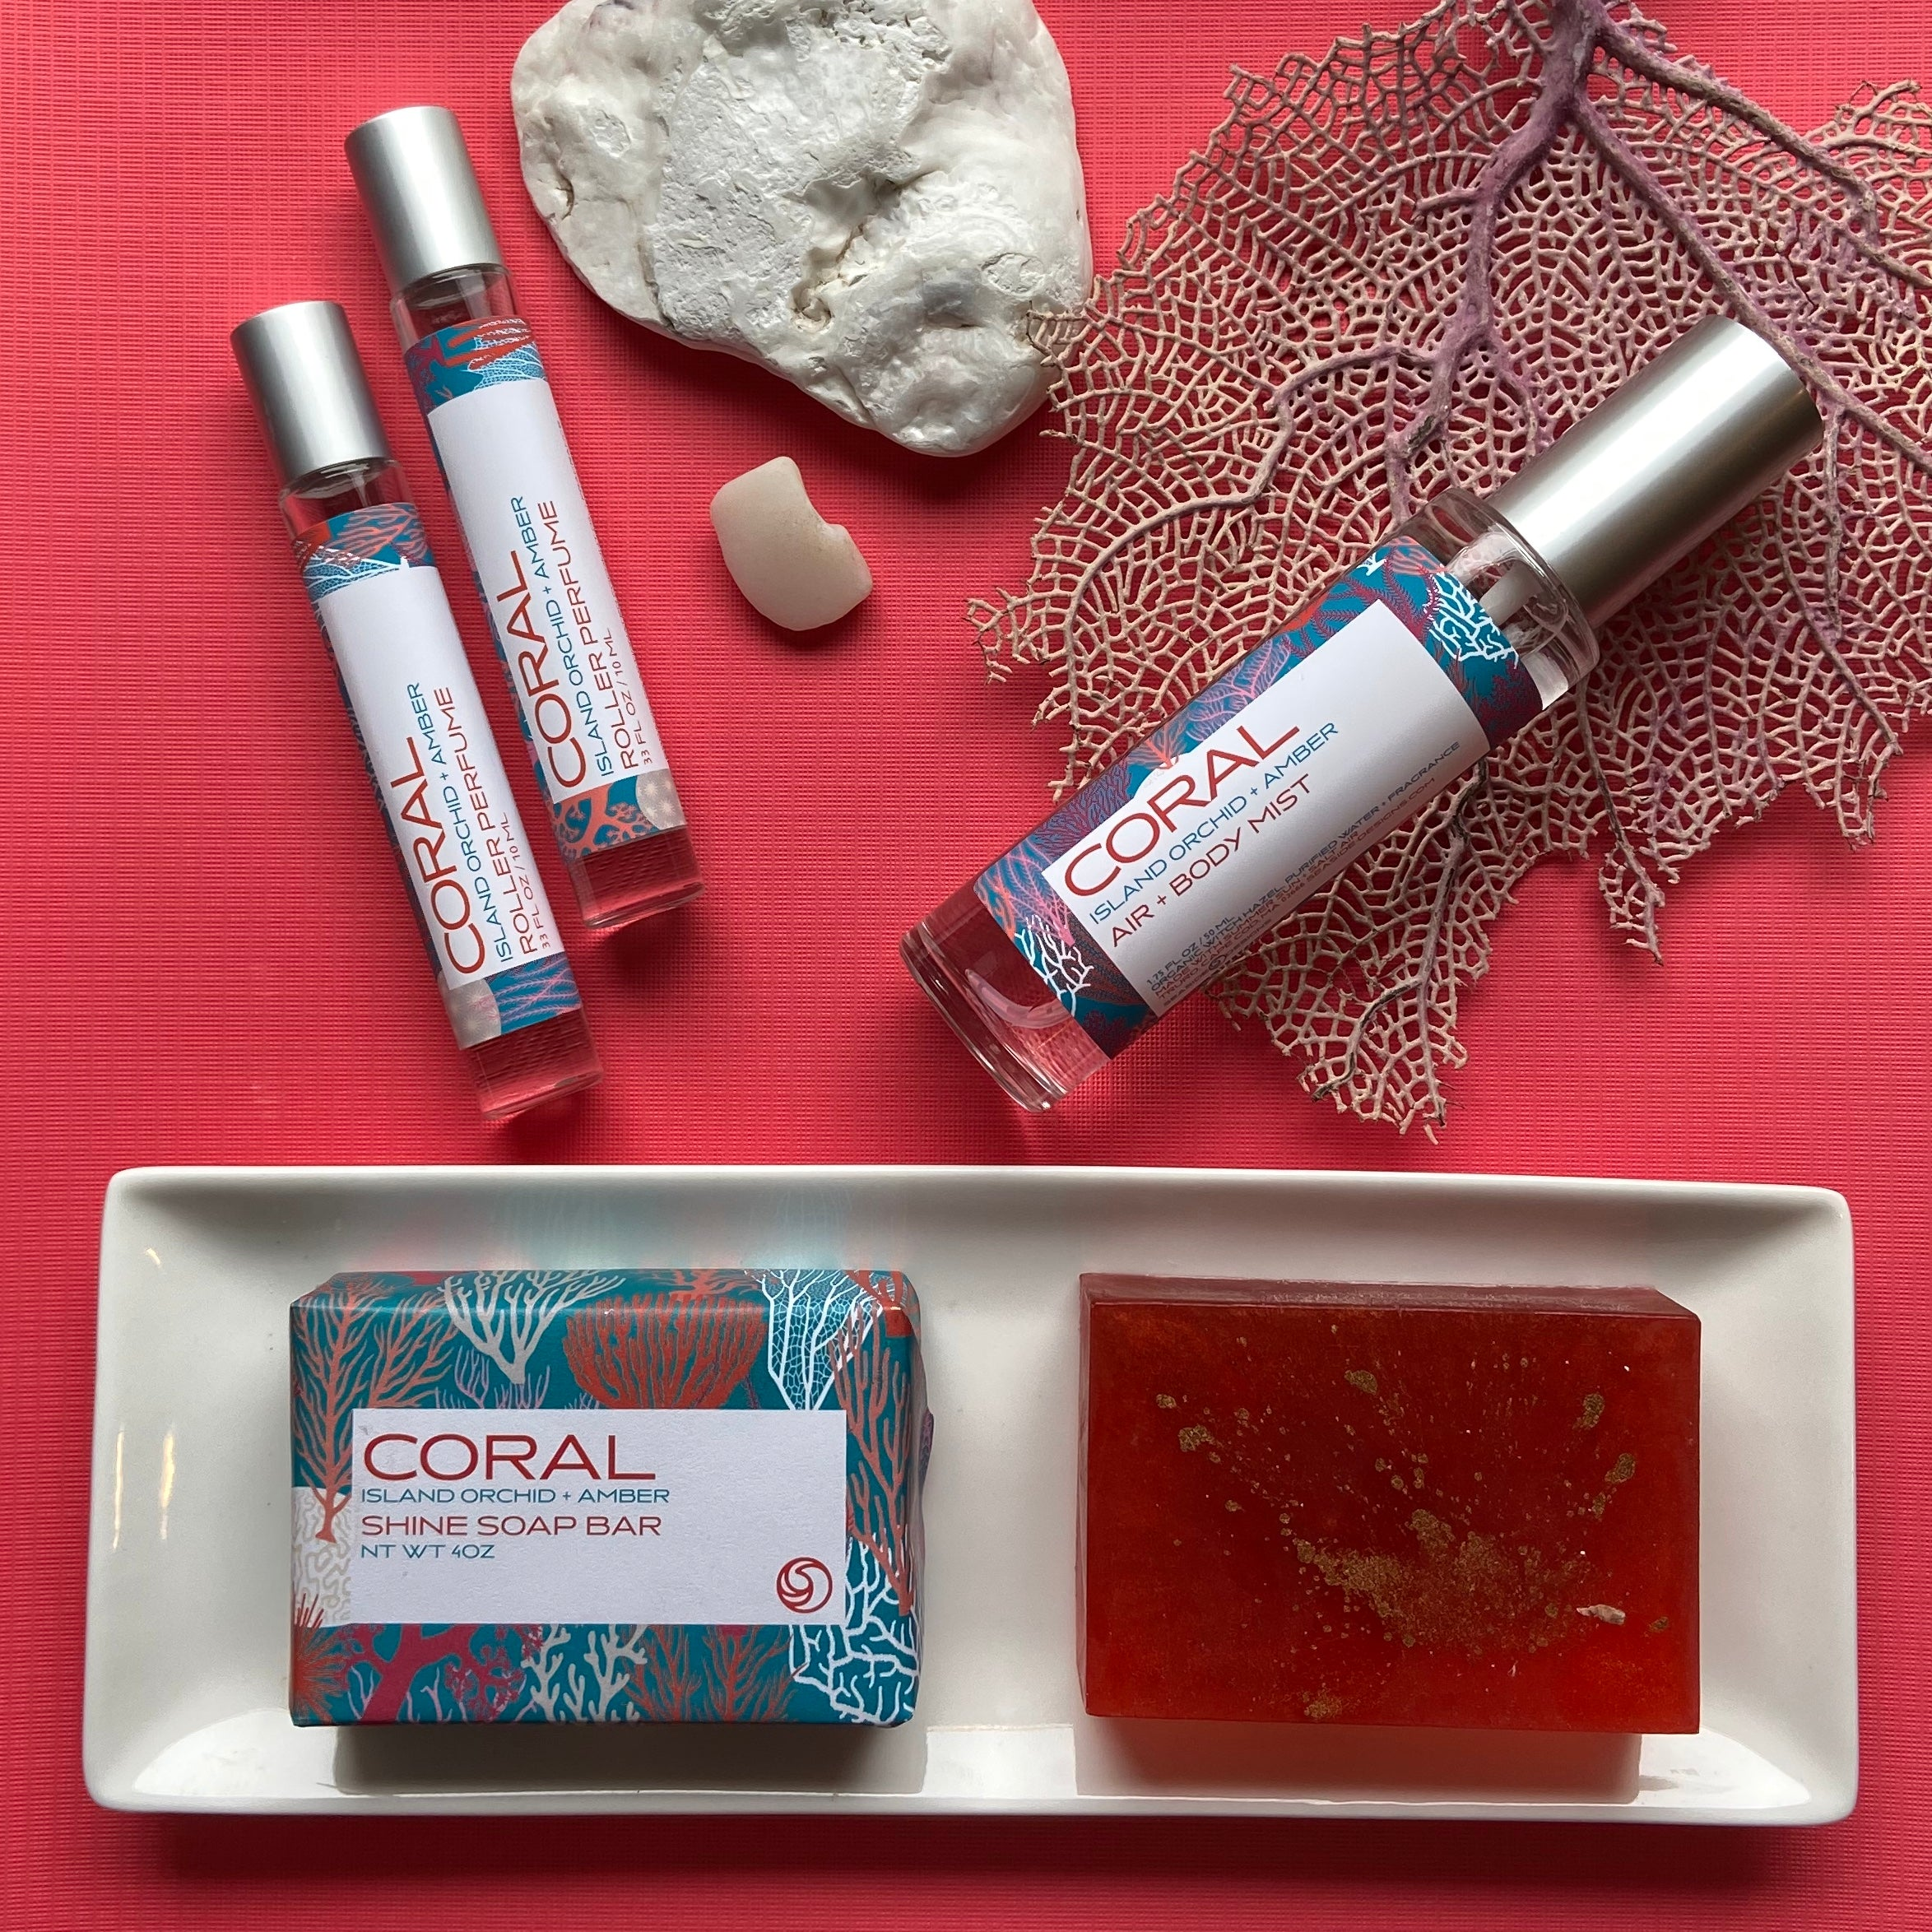 CORAL Self + Surroundings Mist / Wholesale Pack of 4